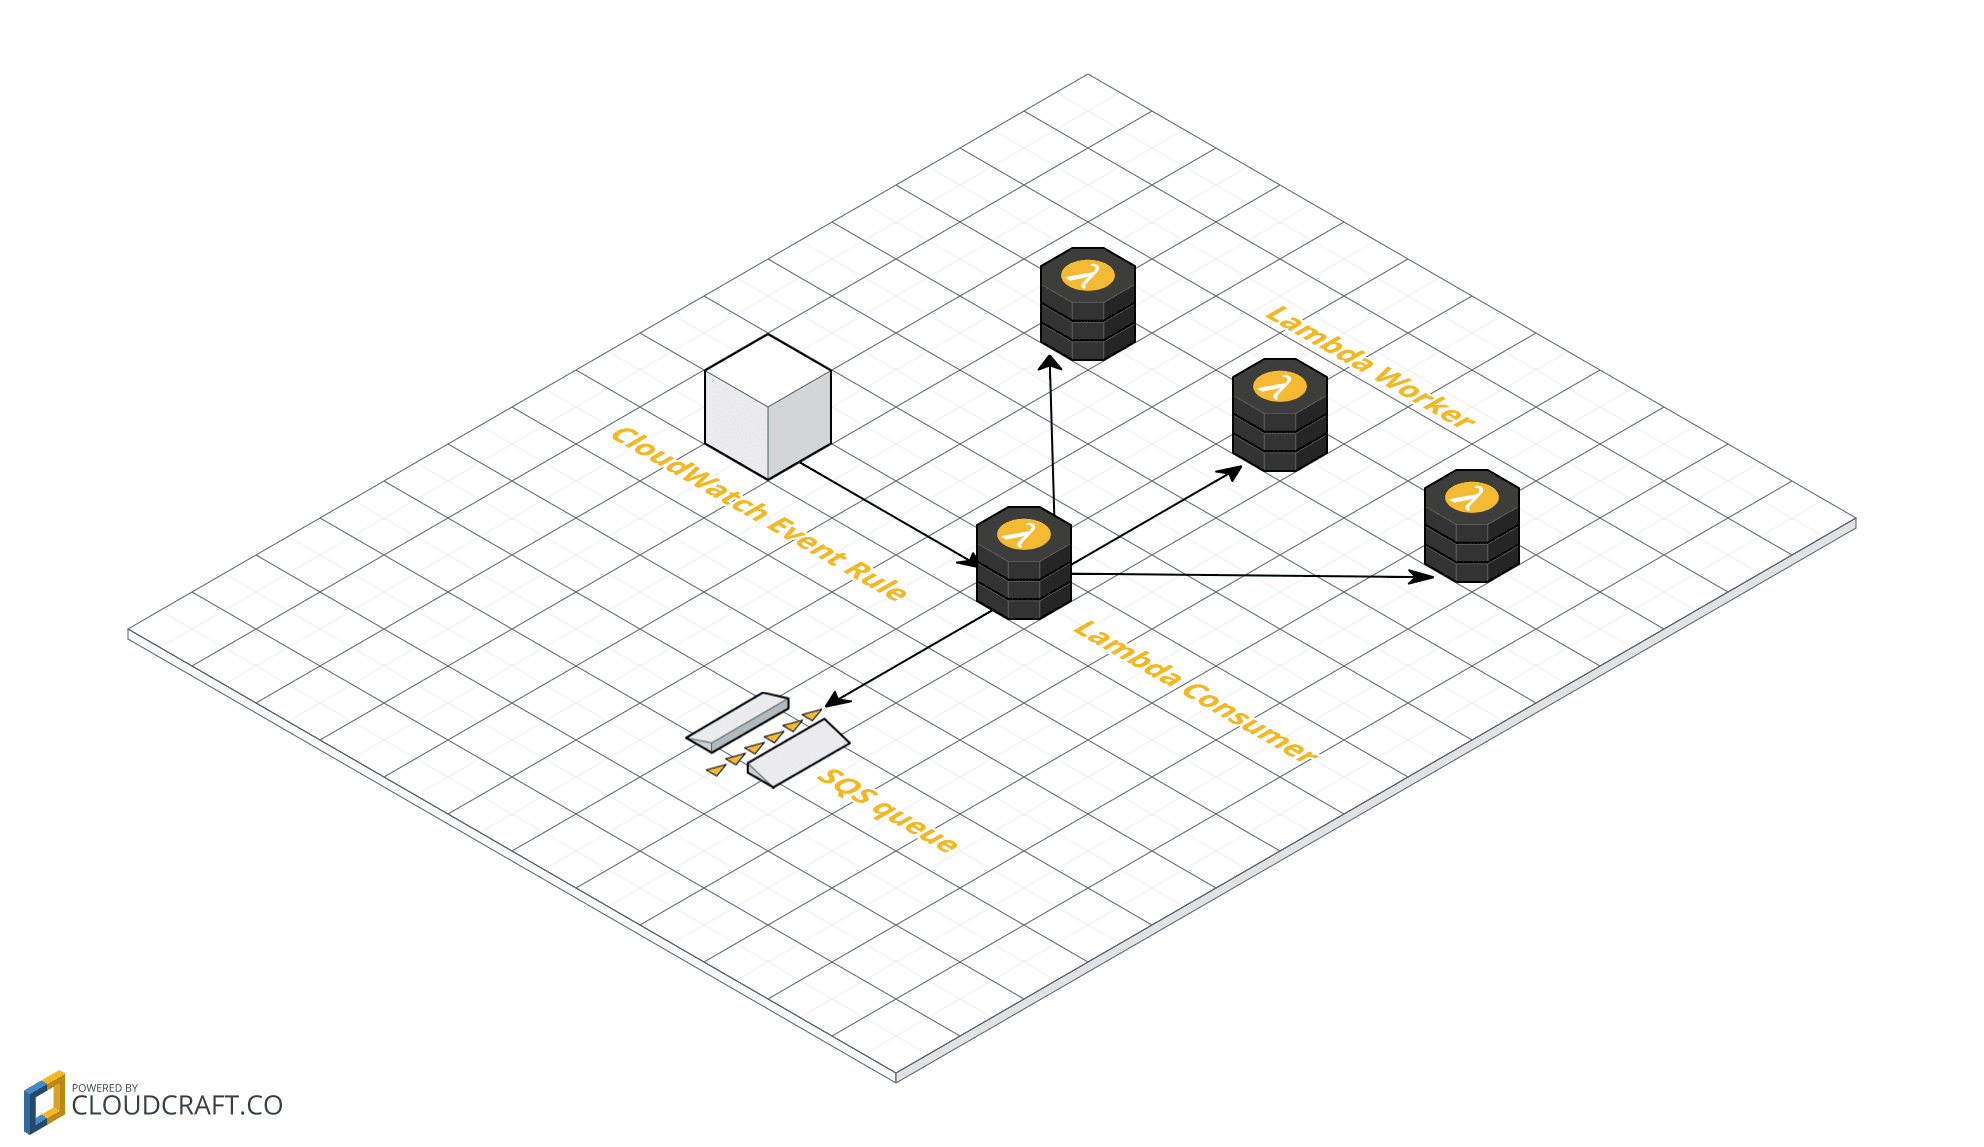 Integrate SQS and Lambda: serverless architecture for asynchronous